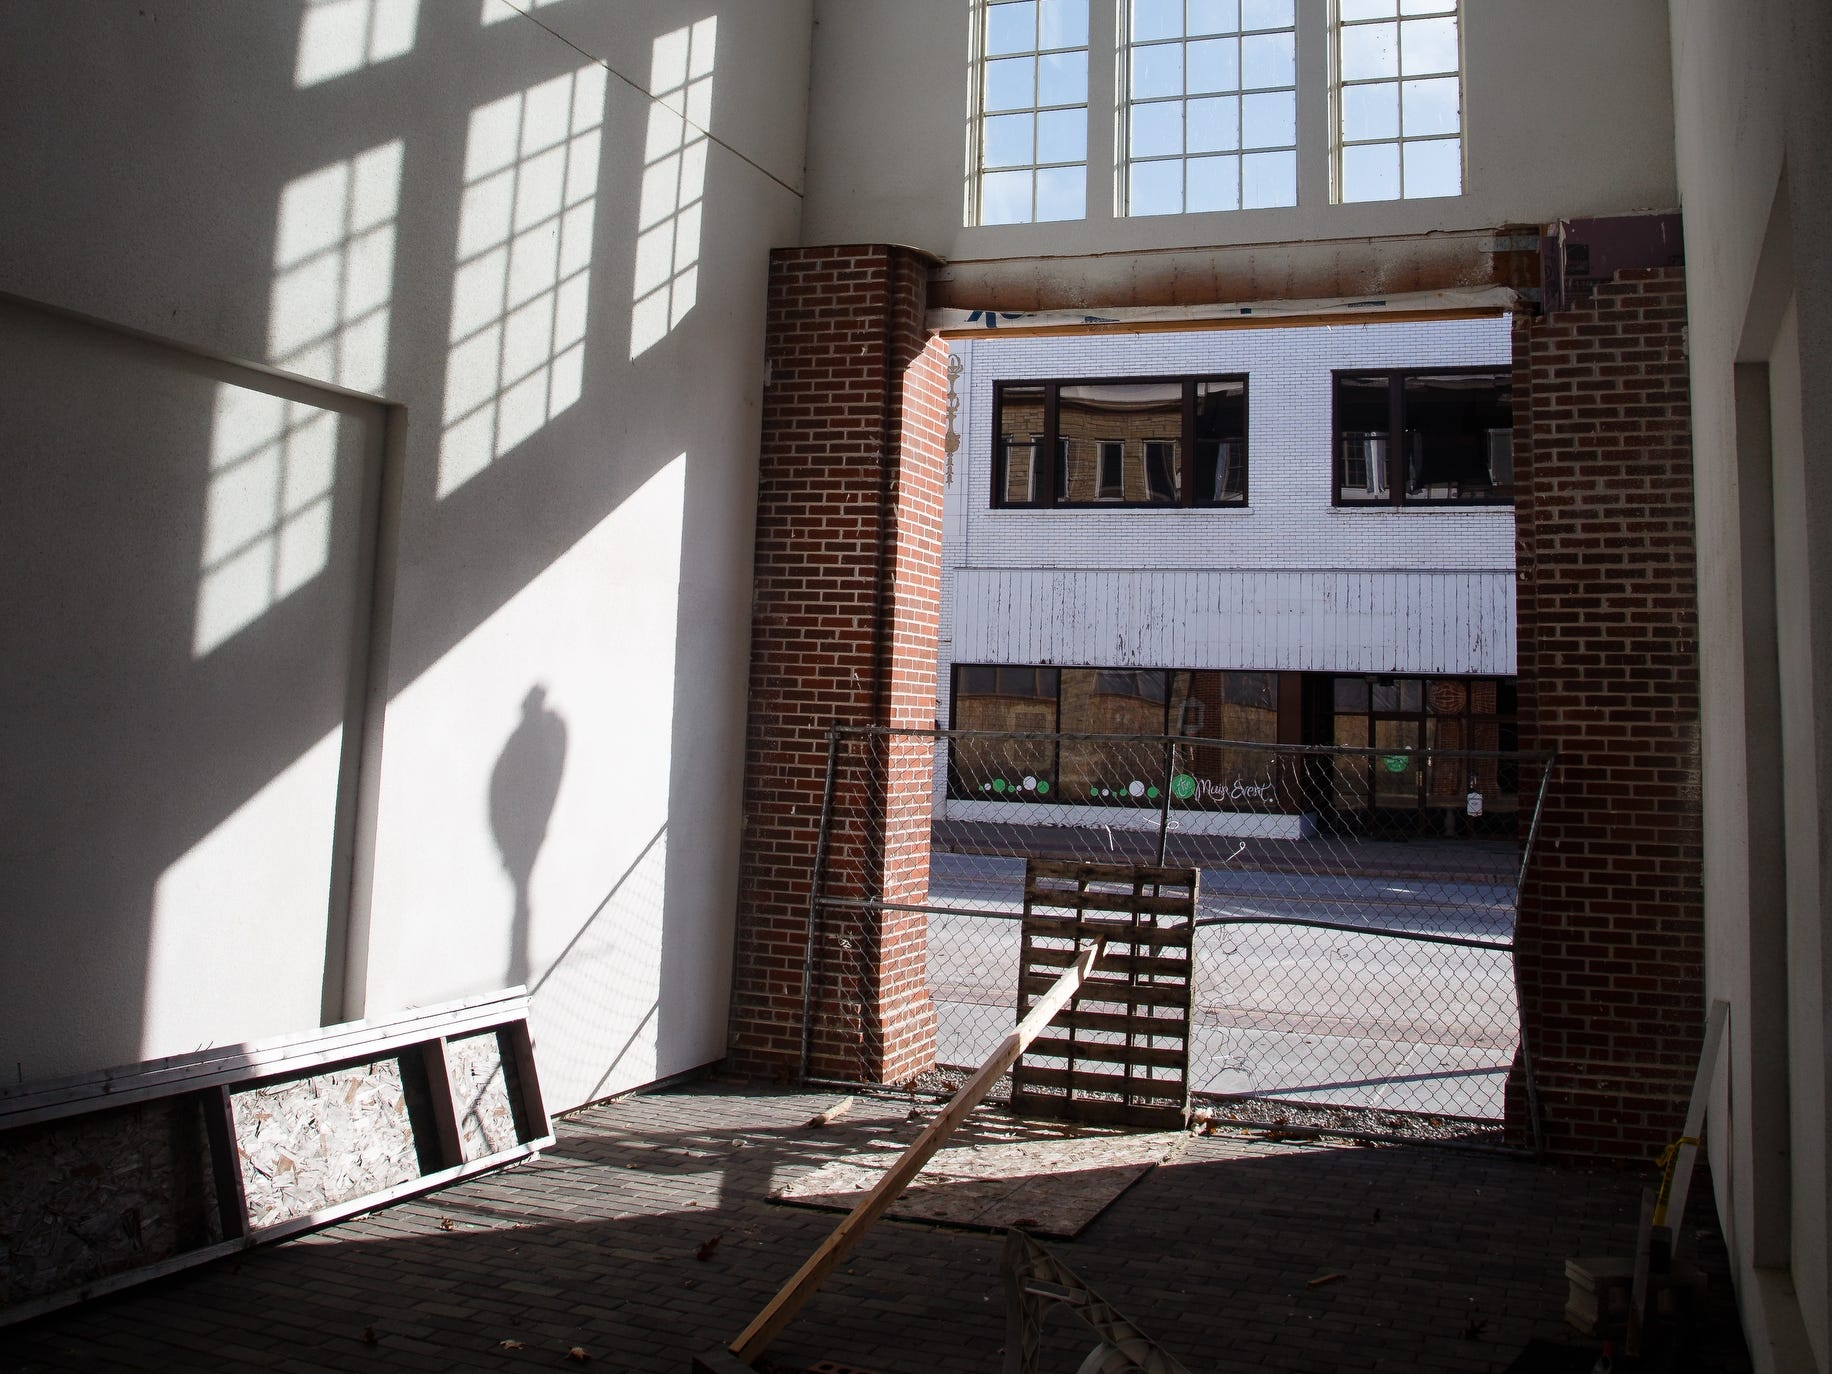 A breezeway through two of the buildings that make up McQuillen Place is seen on Wednesday, Jan. 16, 2019, in Charles City. The project sits on a corner of Charles City's busiest intersection and includes one floor of Main Street retail space with two floors of apartments. Owner Charles Thomson used a multitude of financing deals to fund the project including money from the Iowa Economic Development Authority, whom he claims pulled out after saying he missed an arbitrary deadline. Without the state funding, banks began to pull out of the project which has been sitting vacant and about 90 percent complete for the past year.